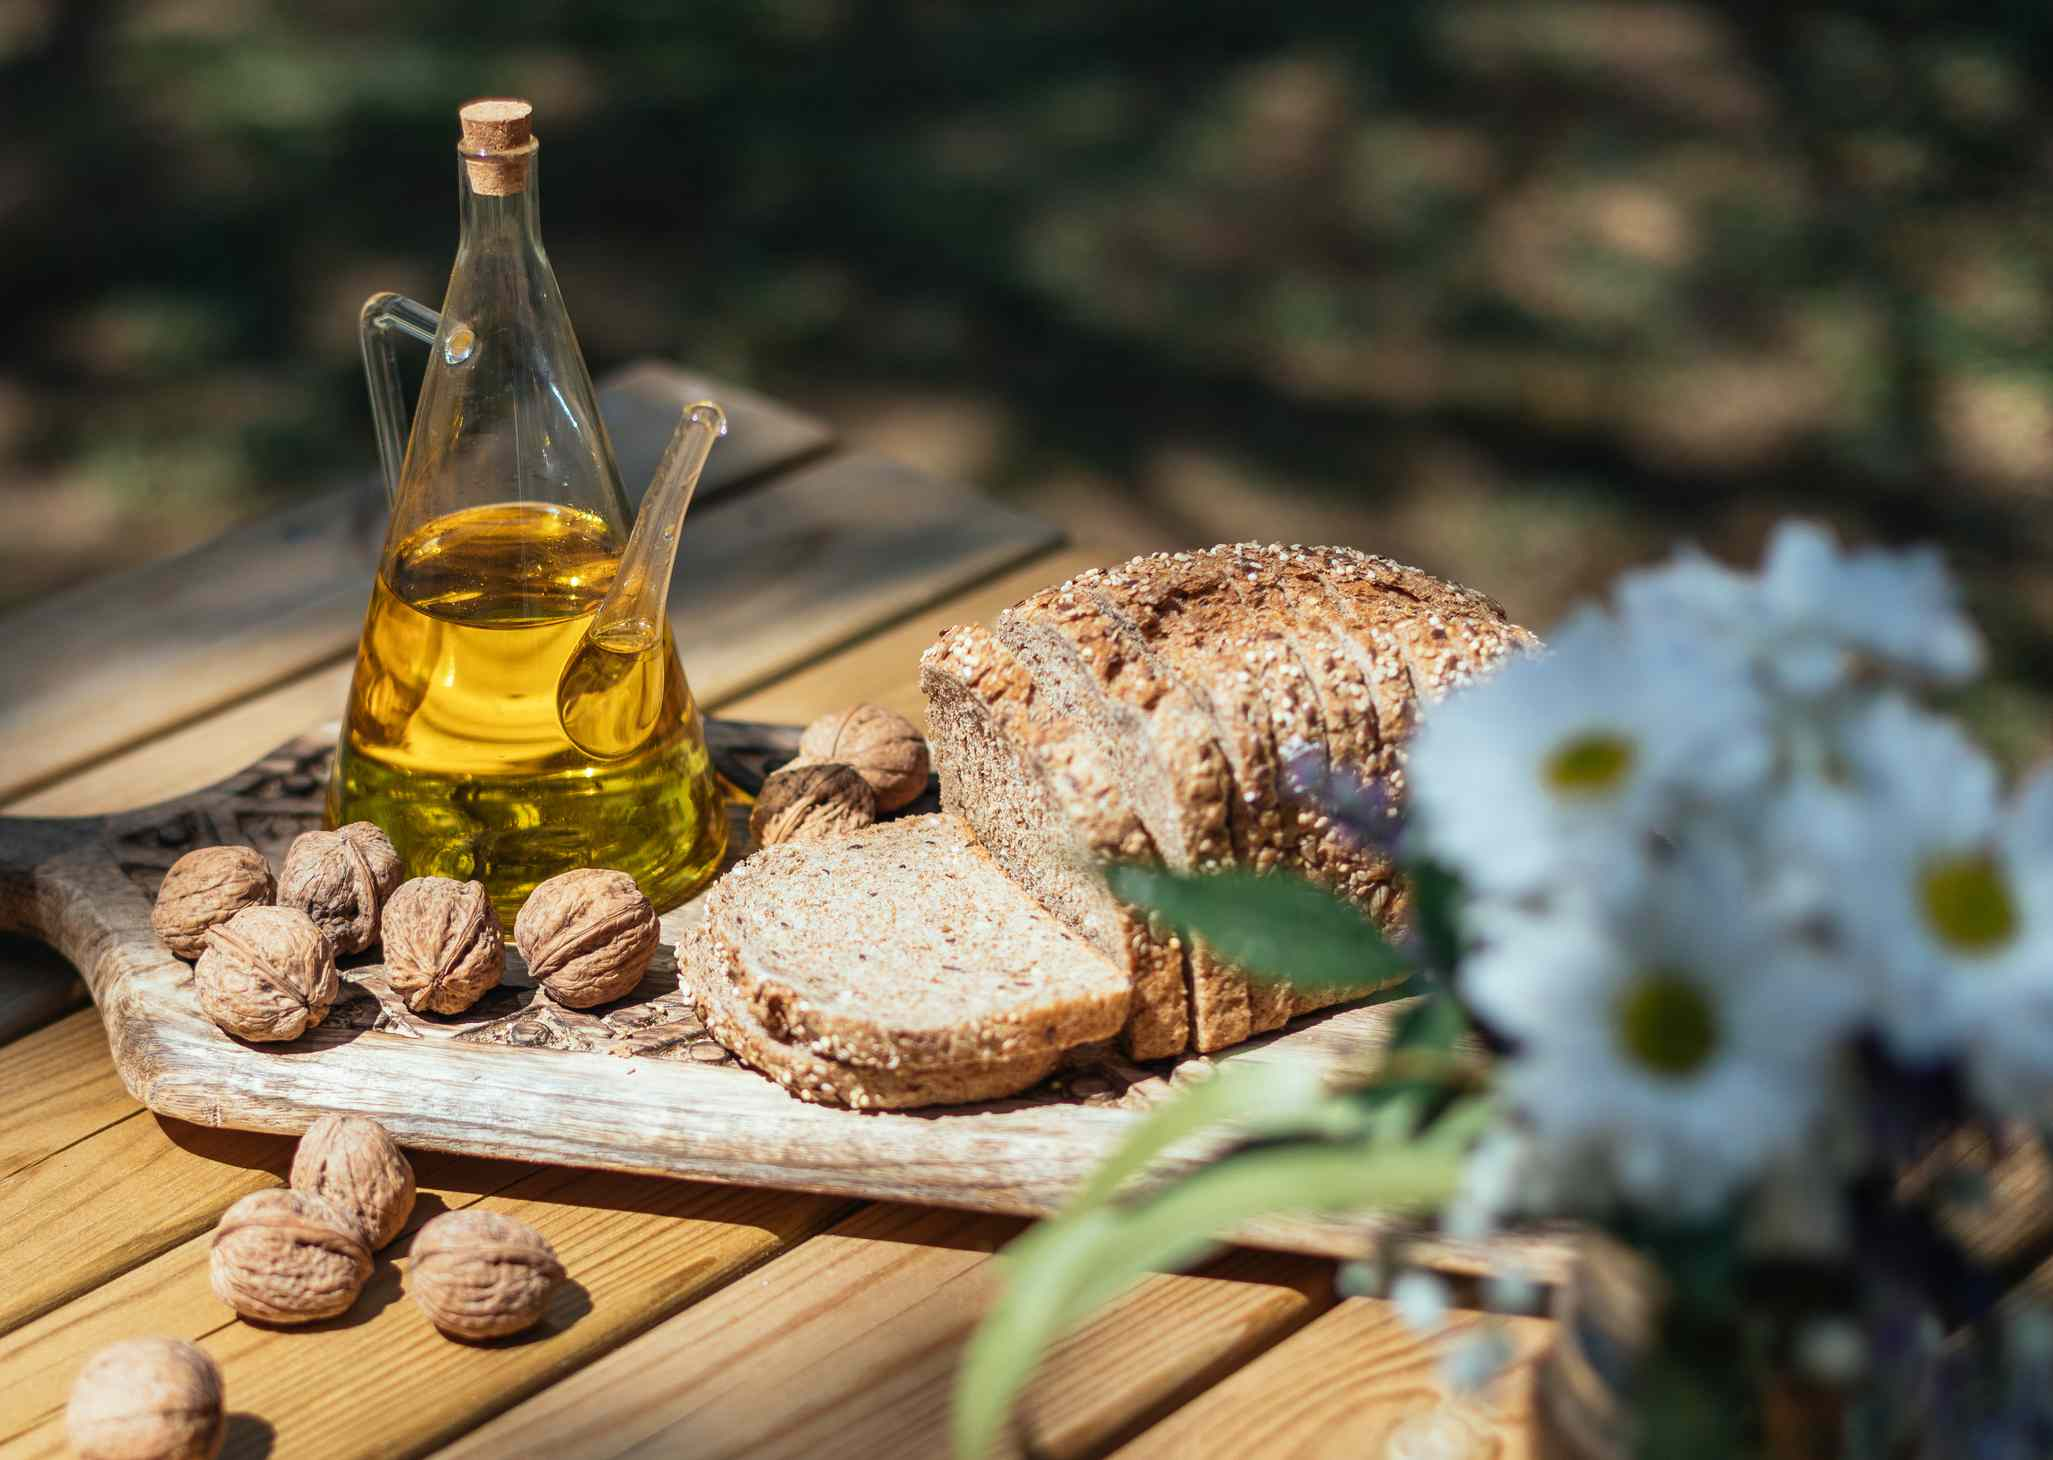 Walnut oil and a loaf of whole grain bread